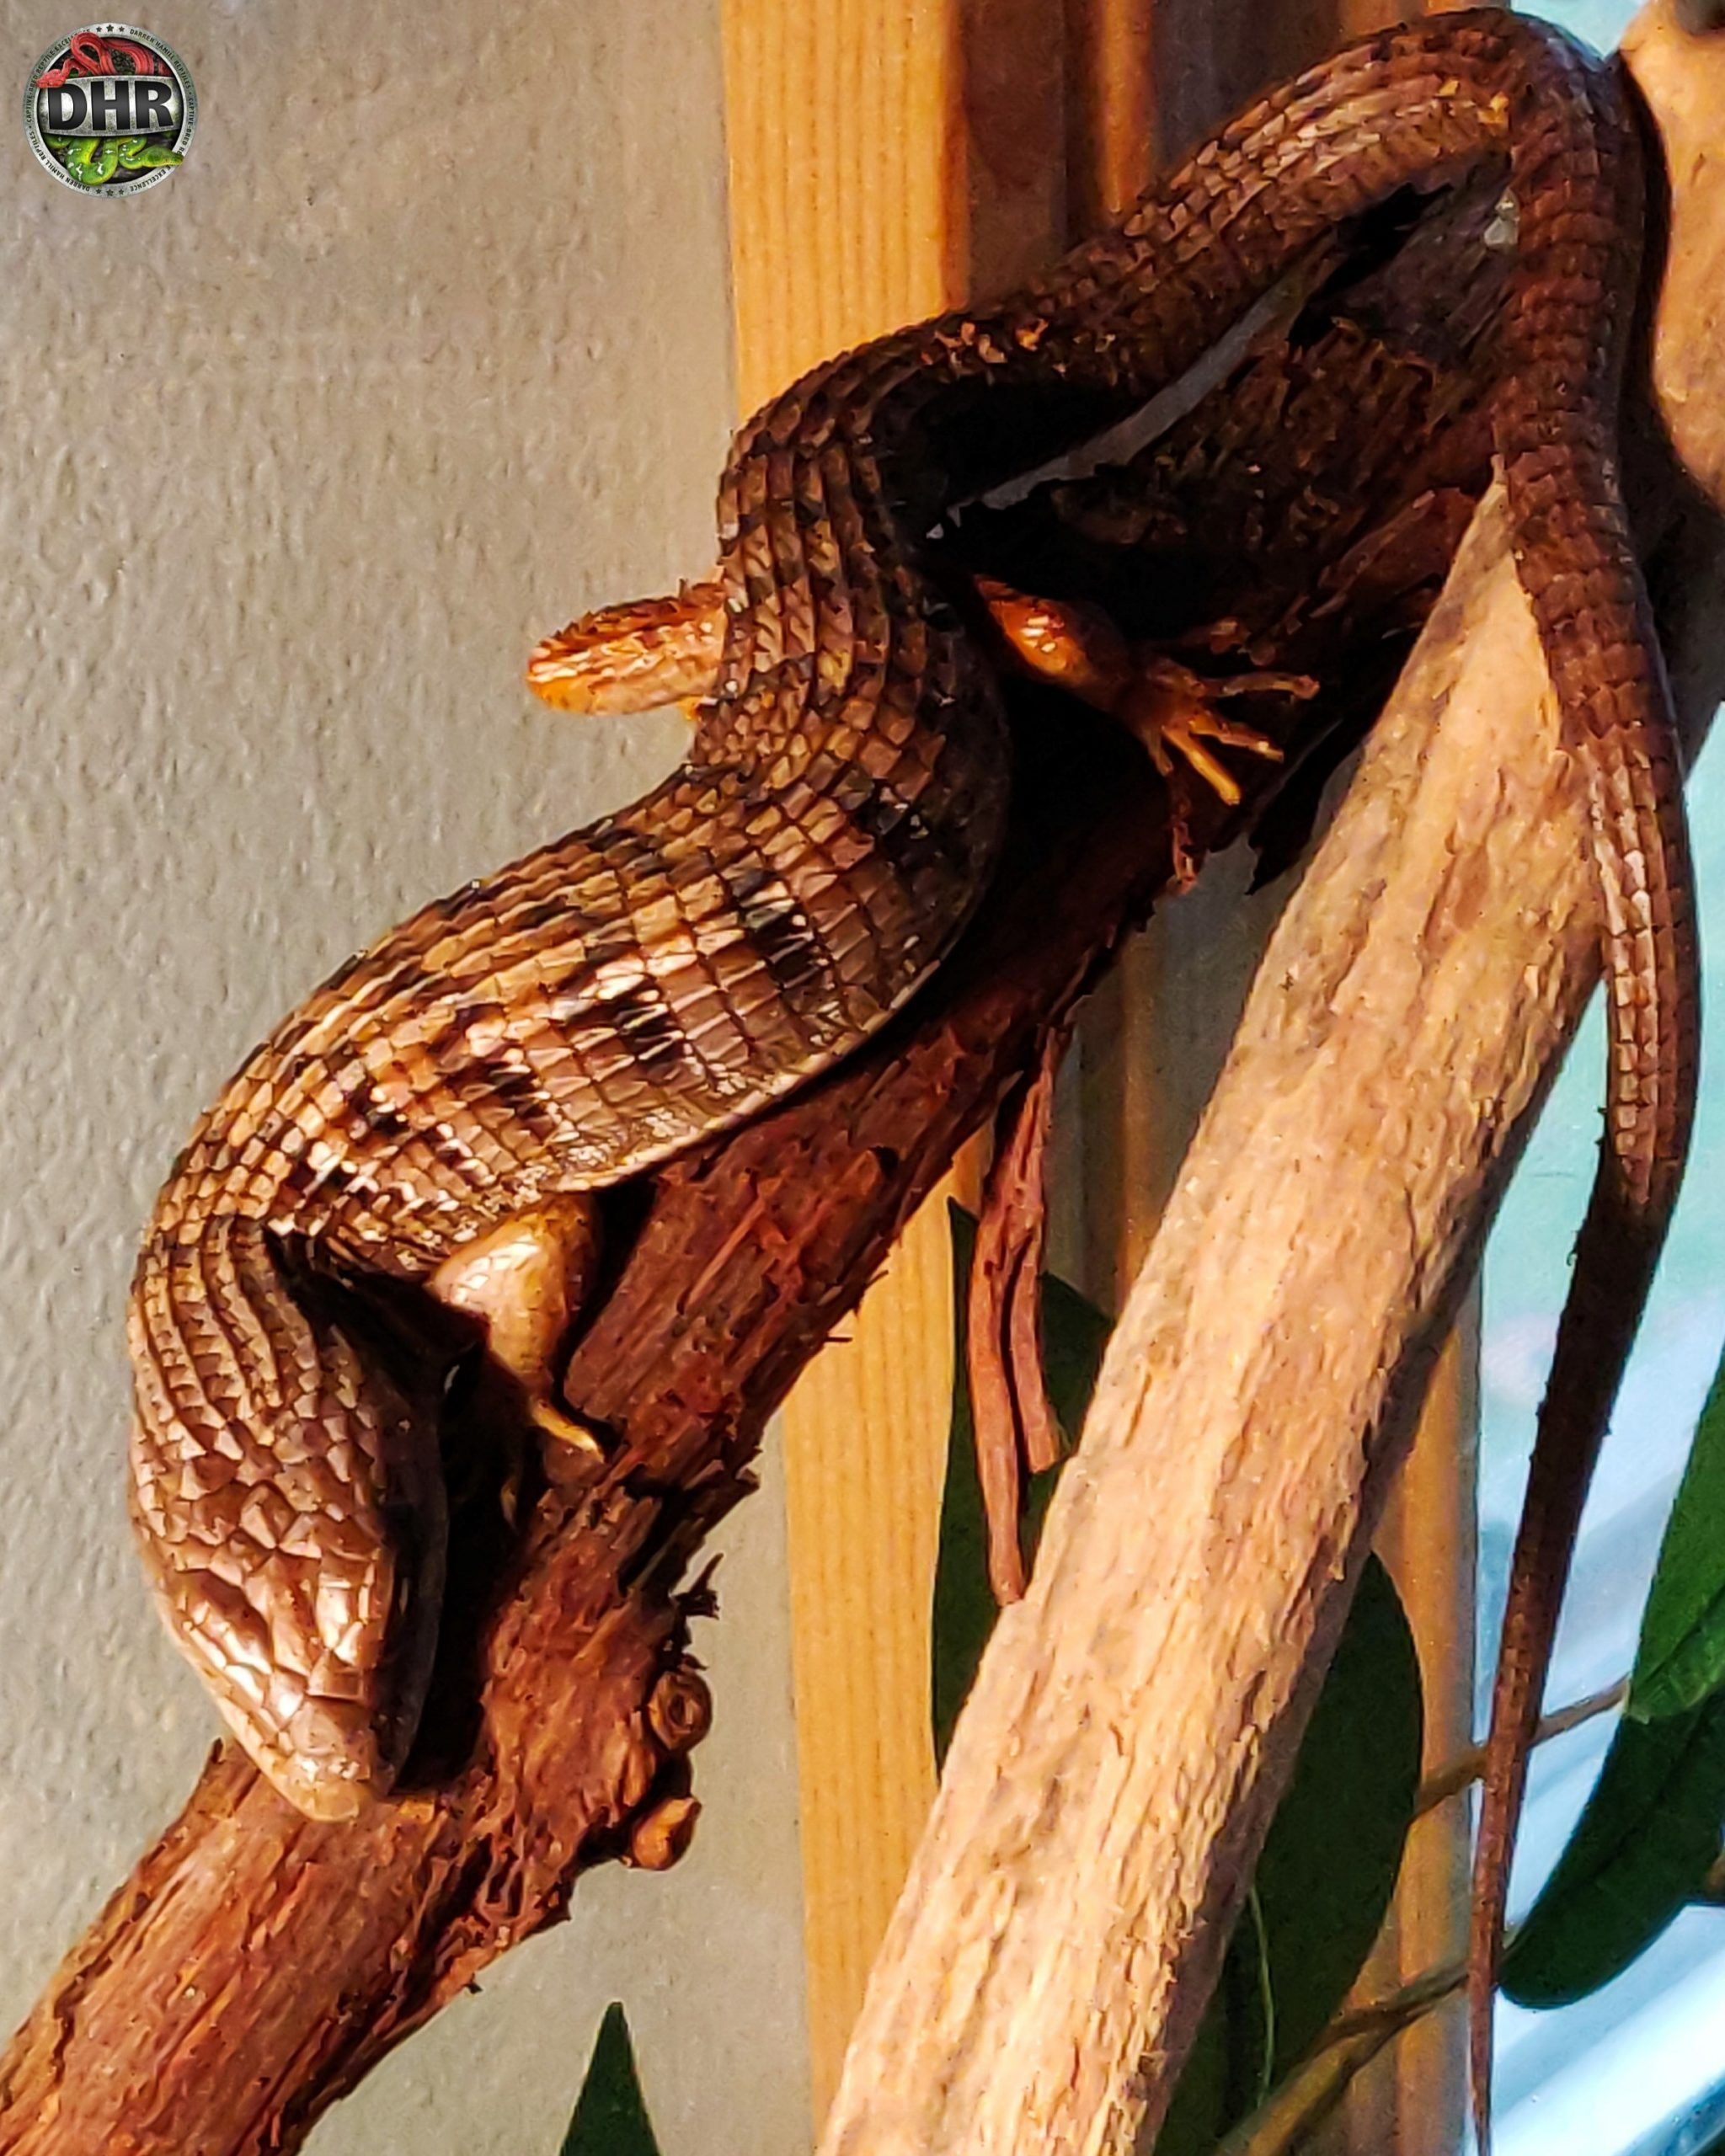 These Southern Alligator Lizards